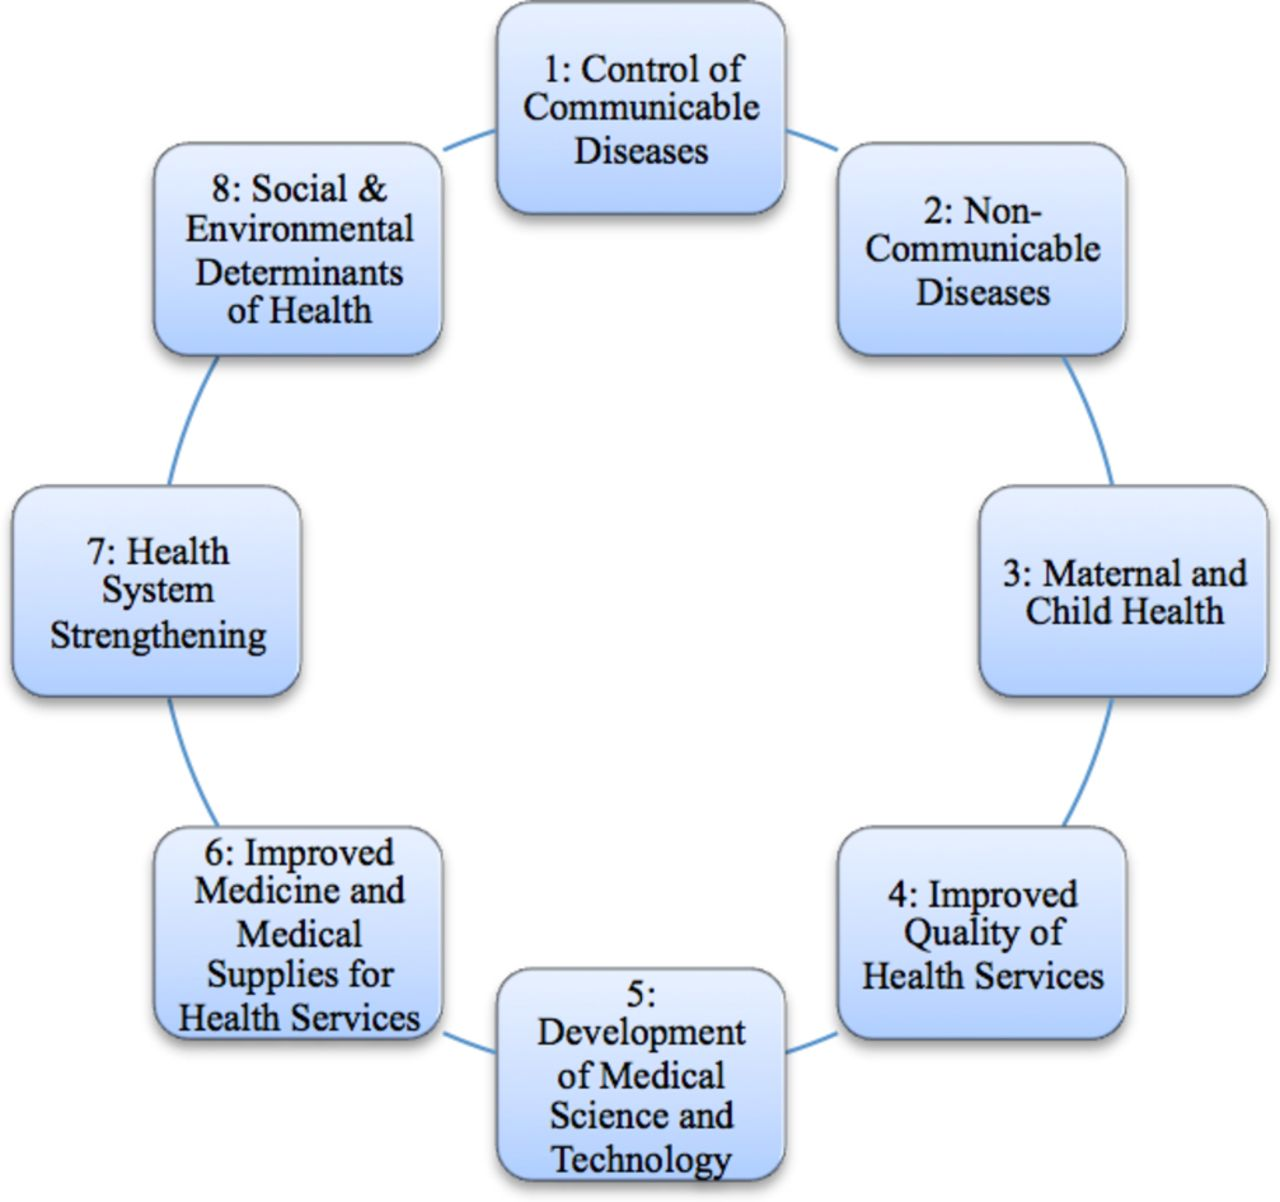 Systematic review of evidence on public health in the Democratic